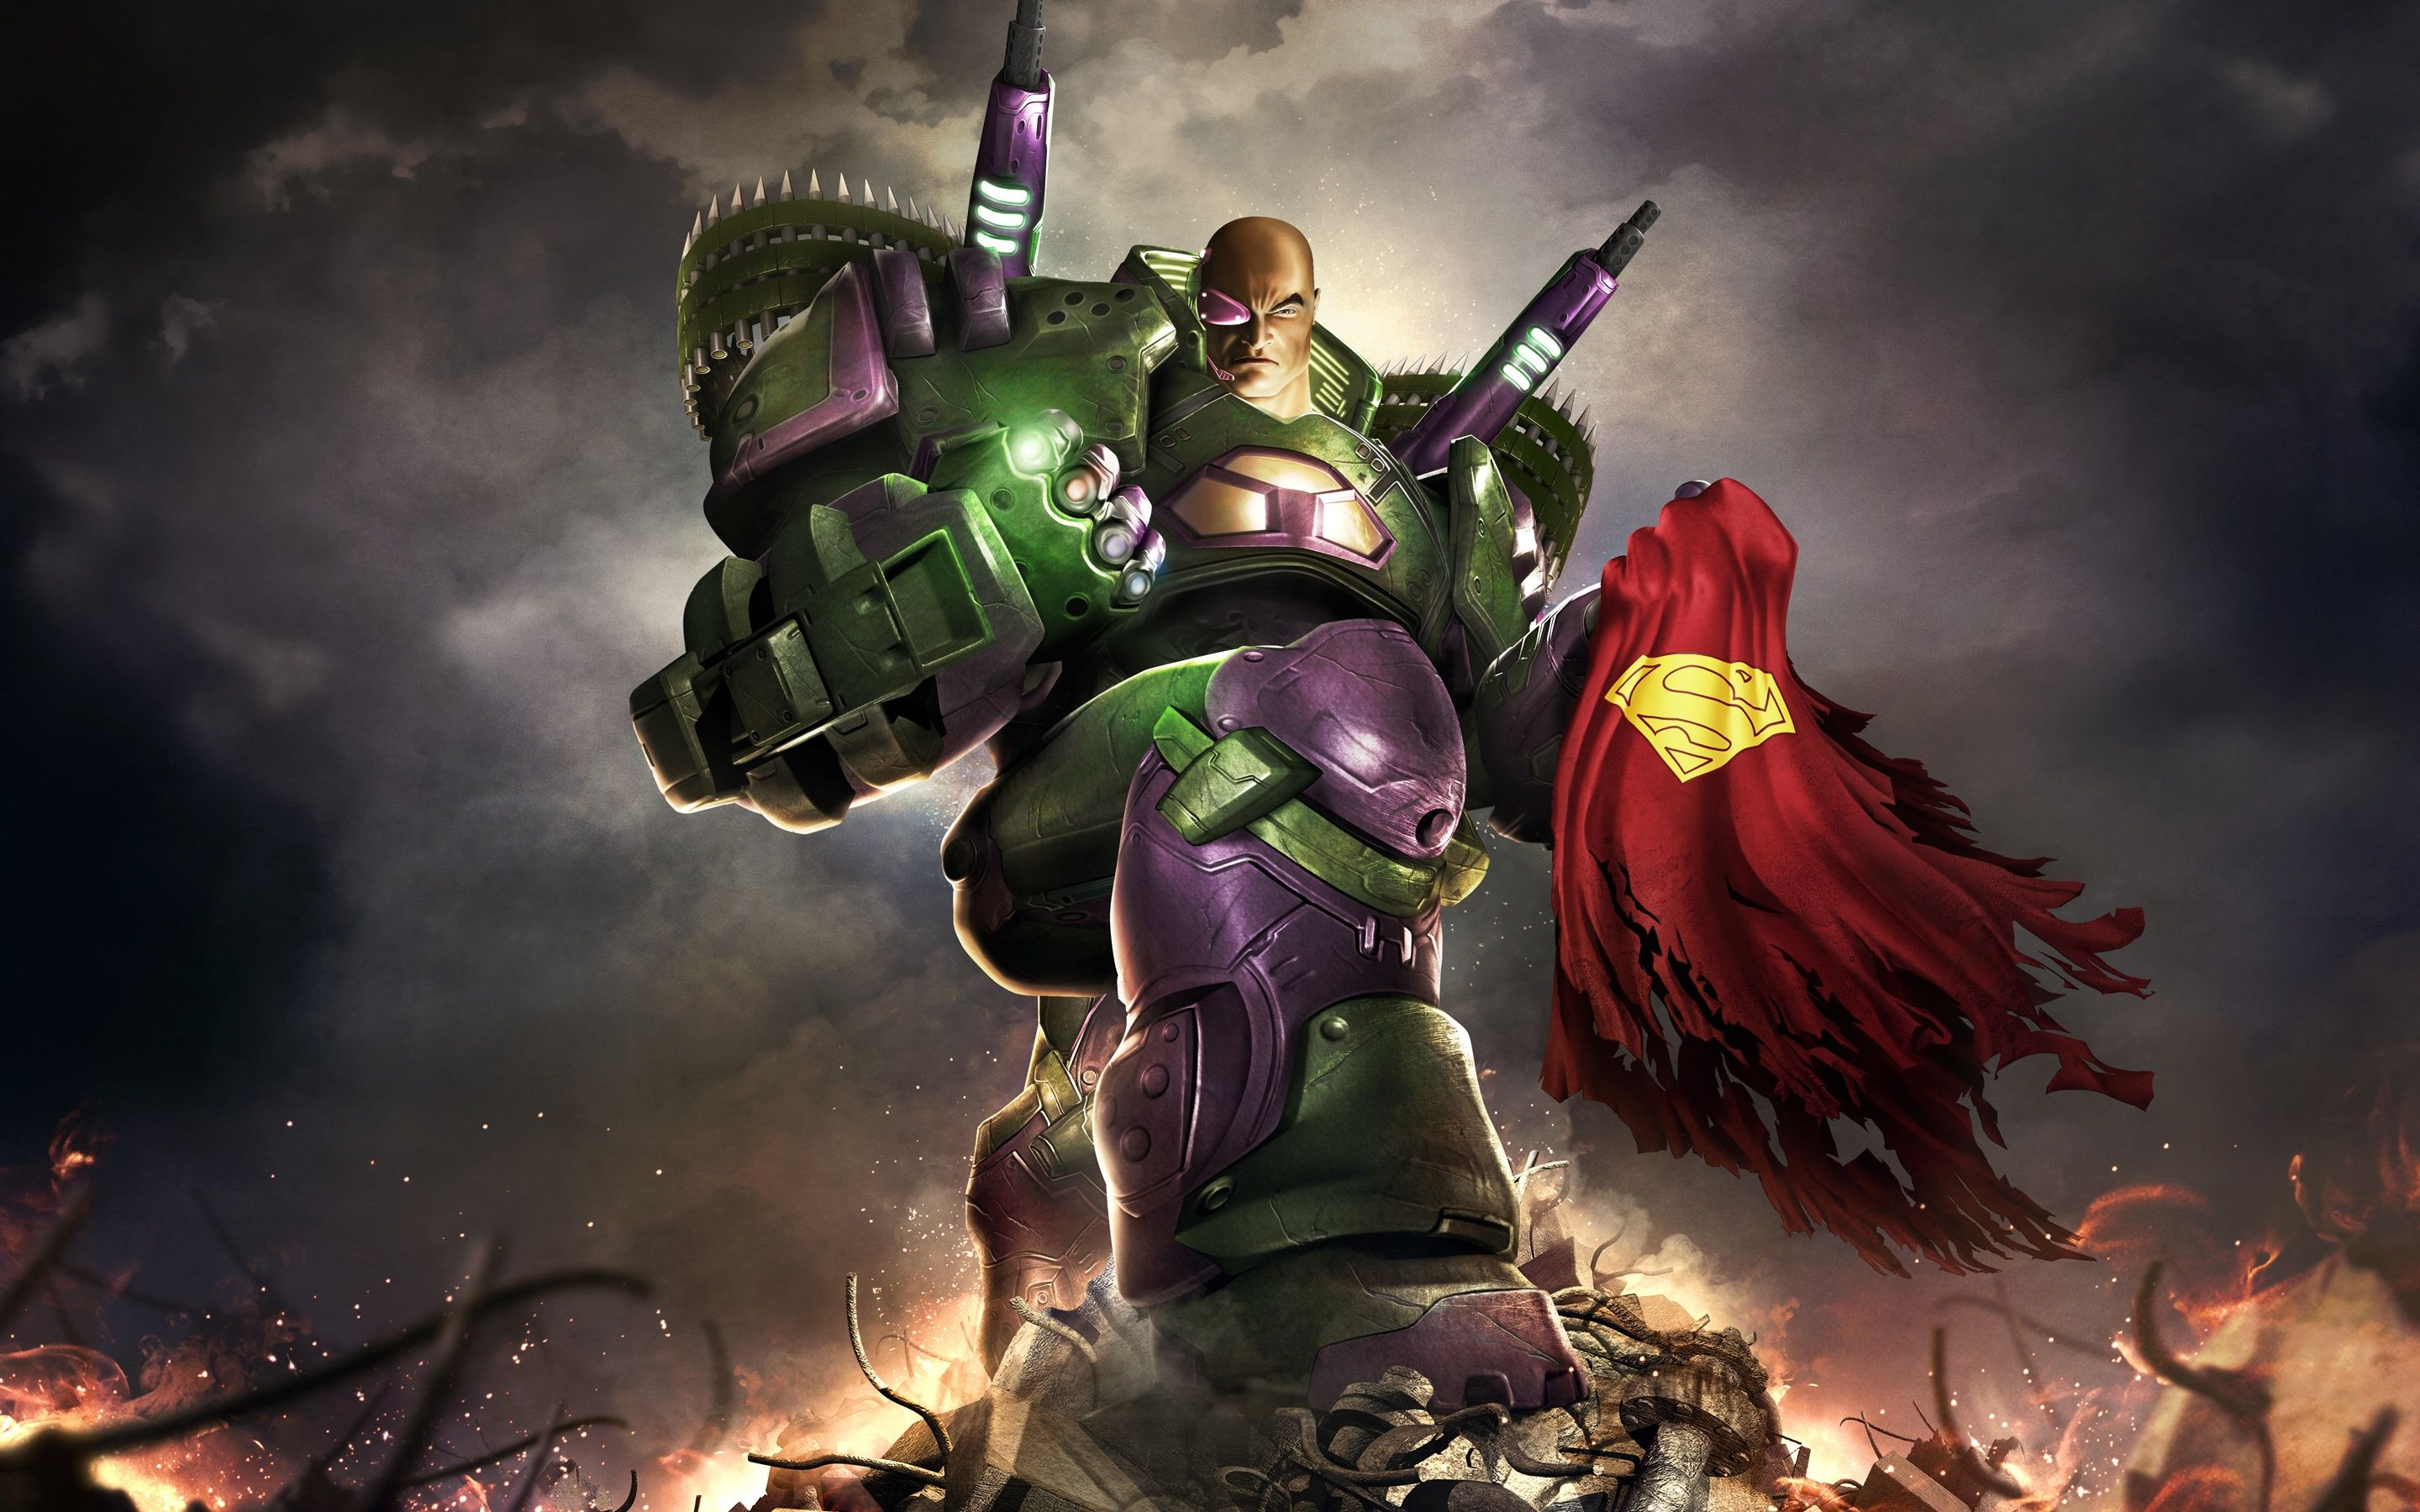 2880x1800 Lex Luthor DC Universe Online Wallpapers in jpg format for free download